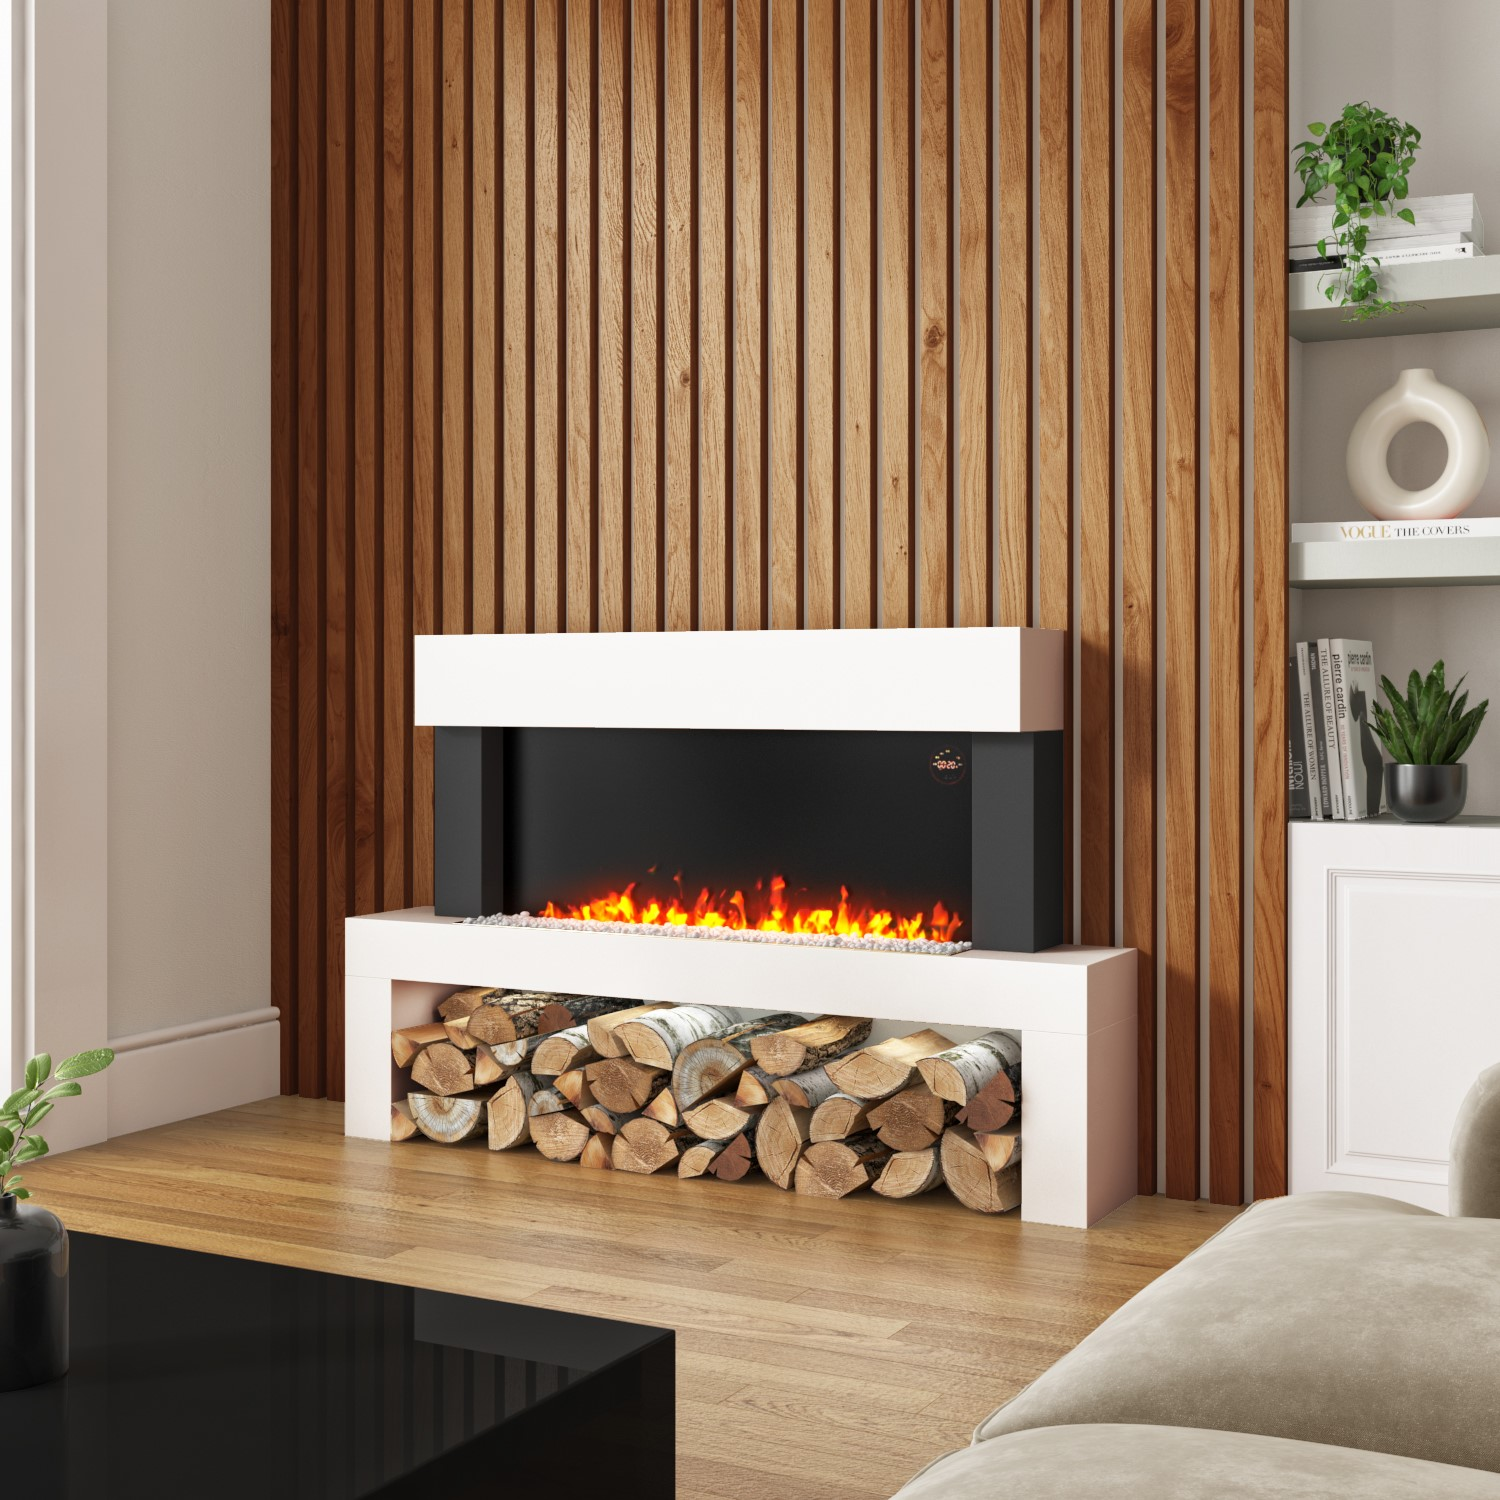 AmberGlo Floor Standing Electric Fireplace Suite in White  Log & Crystal Fuel Bed